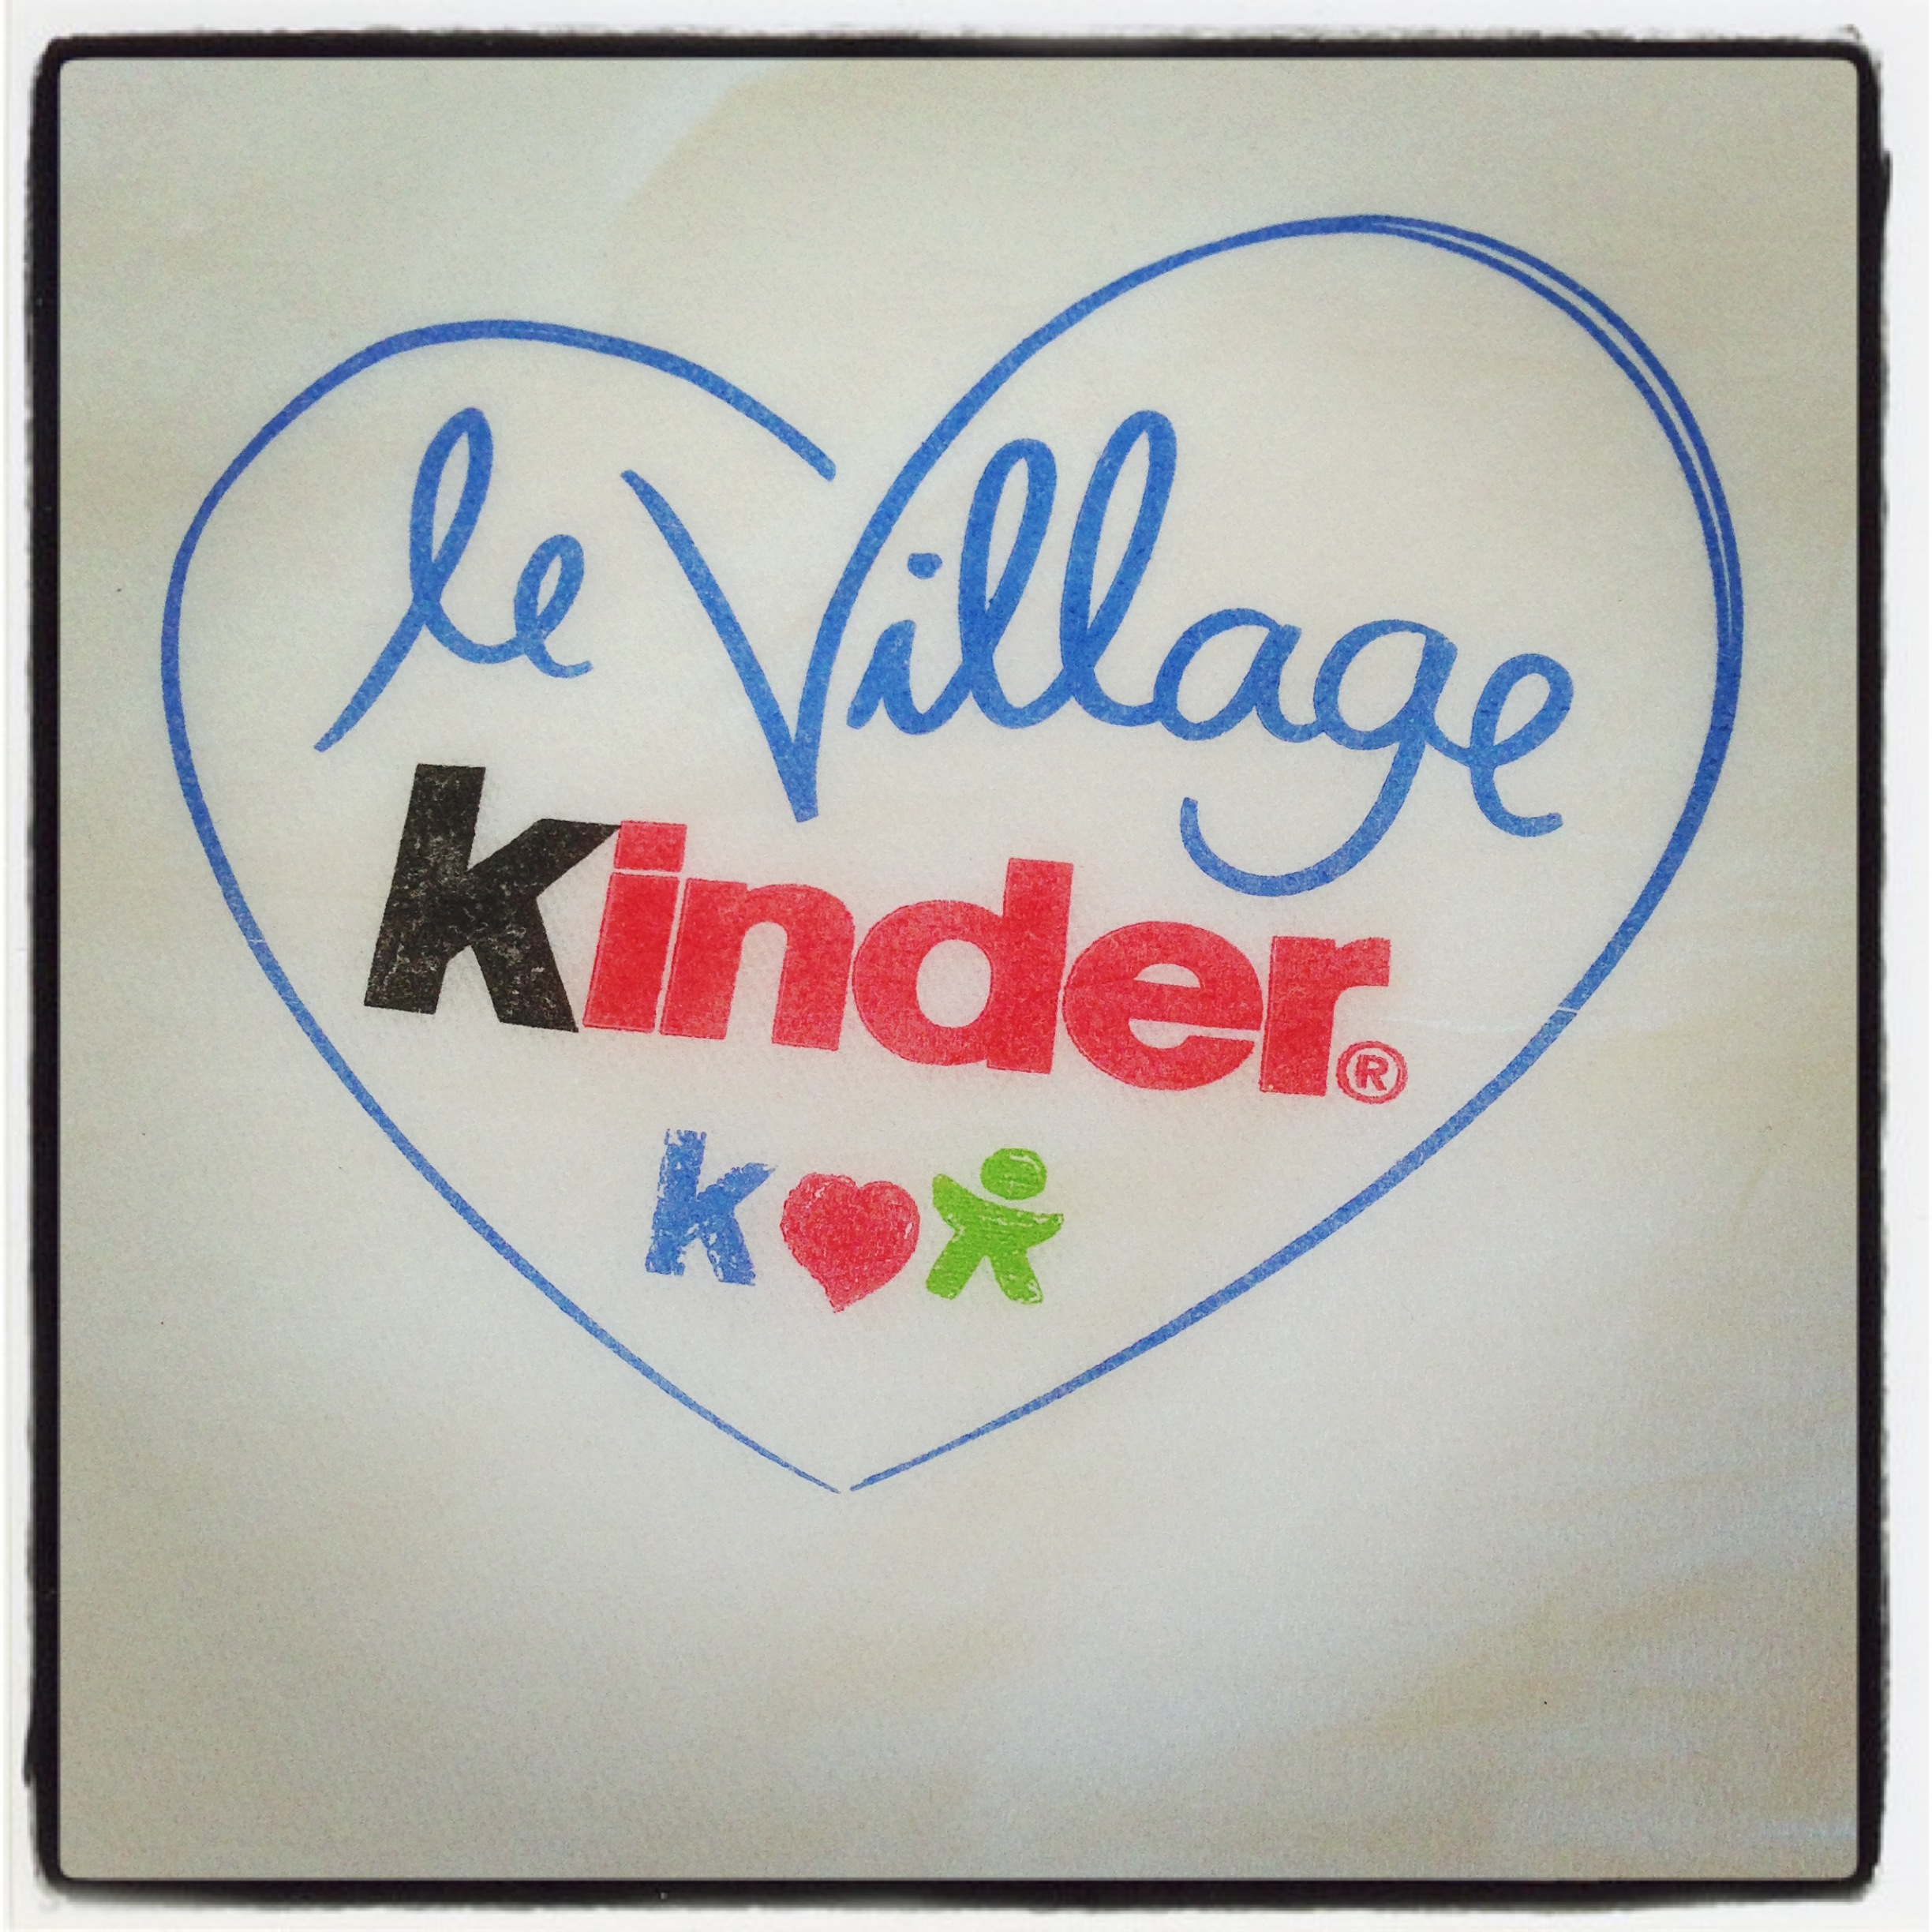 Les Papotages de Nana - Village Kinder